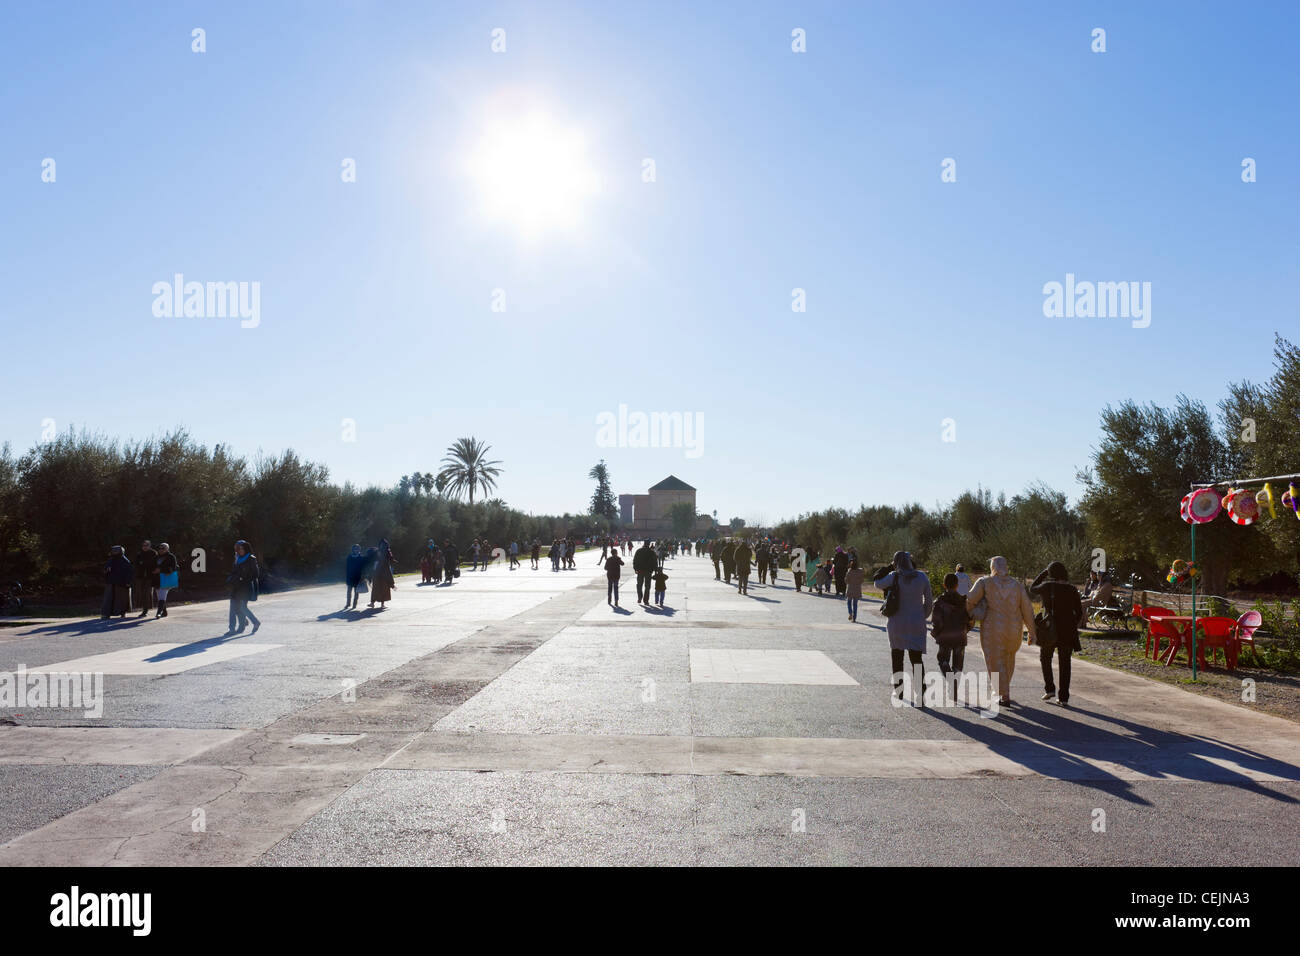 Local people taking an early evening stroll in the Menara Gardens, Marrakech, Morocco, North Africa - Stock Image